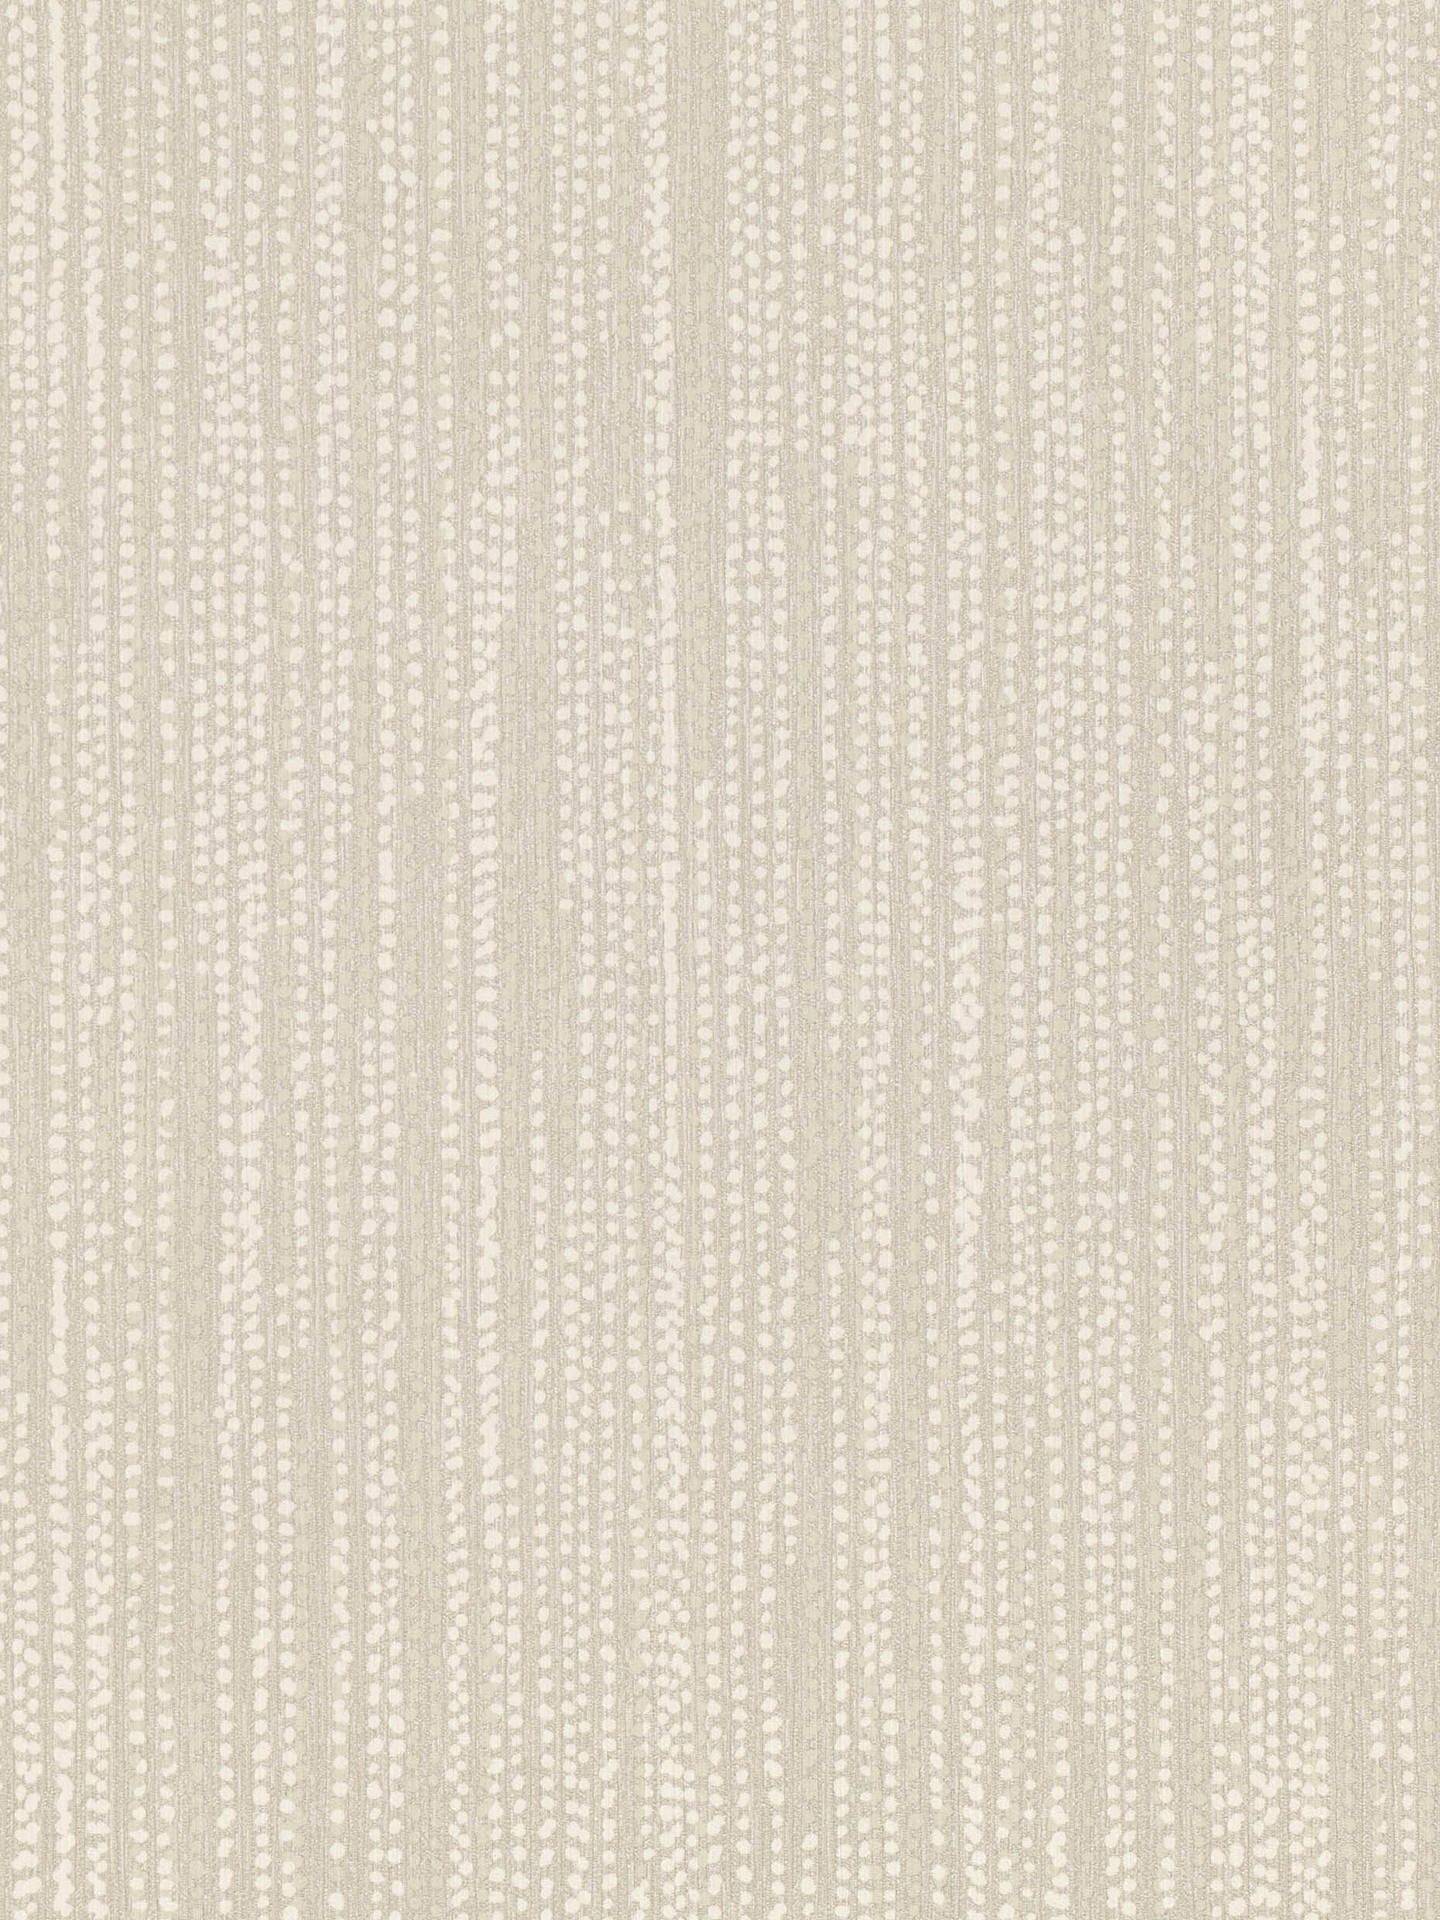 BuyVilla Nova Hana Nui Wallpaper, Pumice W547/01 Online at johnlewis.com